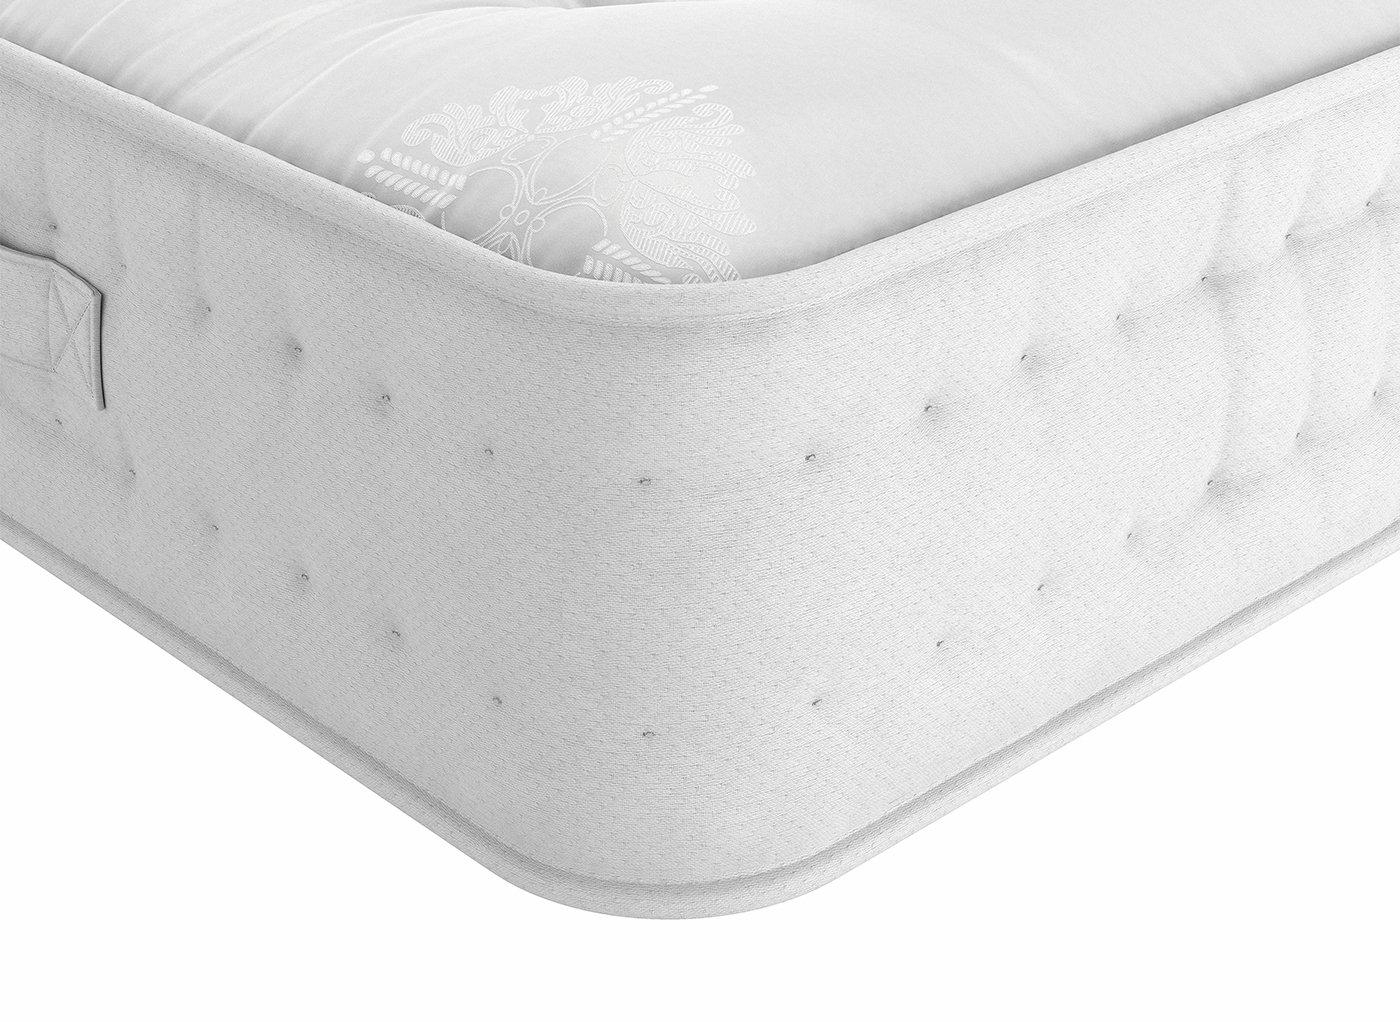 contract-mostel-pocket-sprung-mattress